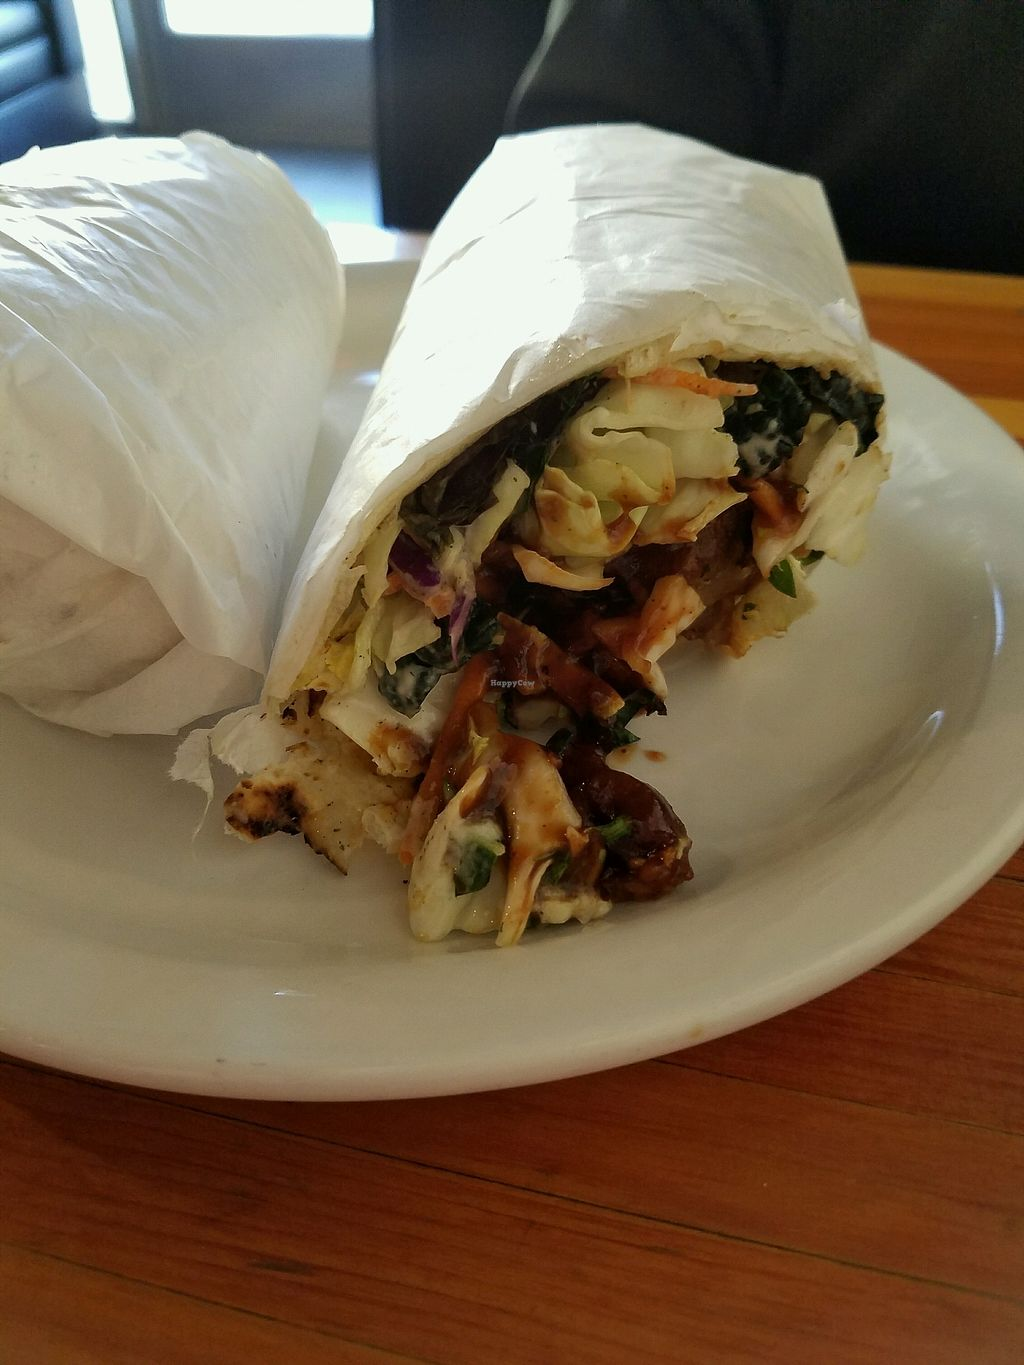 """Photo of Green New American Vegetarian  by <a href=""""/members/profile/JacqueEllis"""">JacqueEllis</a> <br/>Ranchero Burrito <br/> January 26, 2018  - <a href='/contact/abuse/image/3562/351266'>Report</a>"""